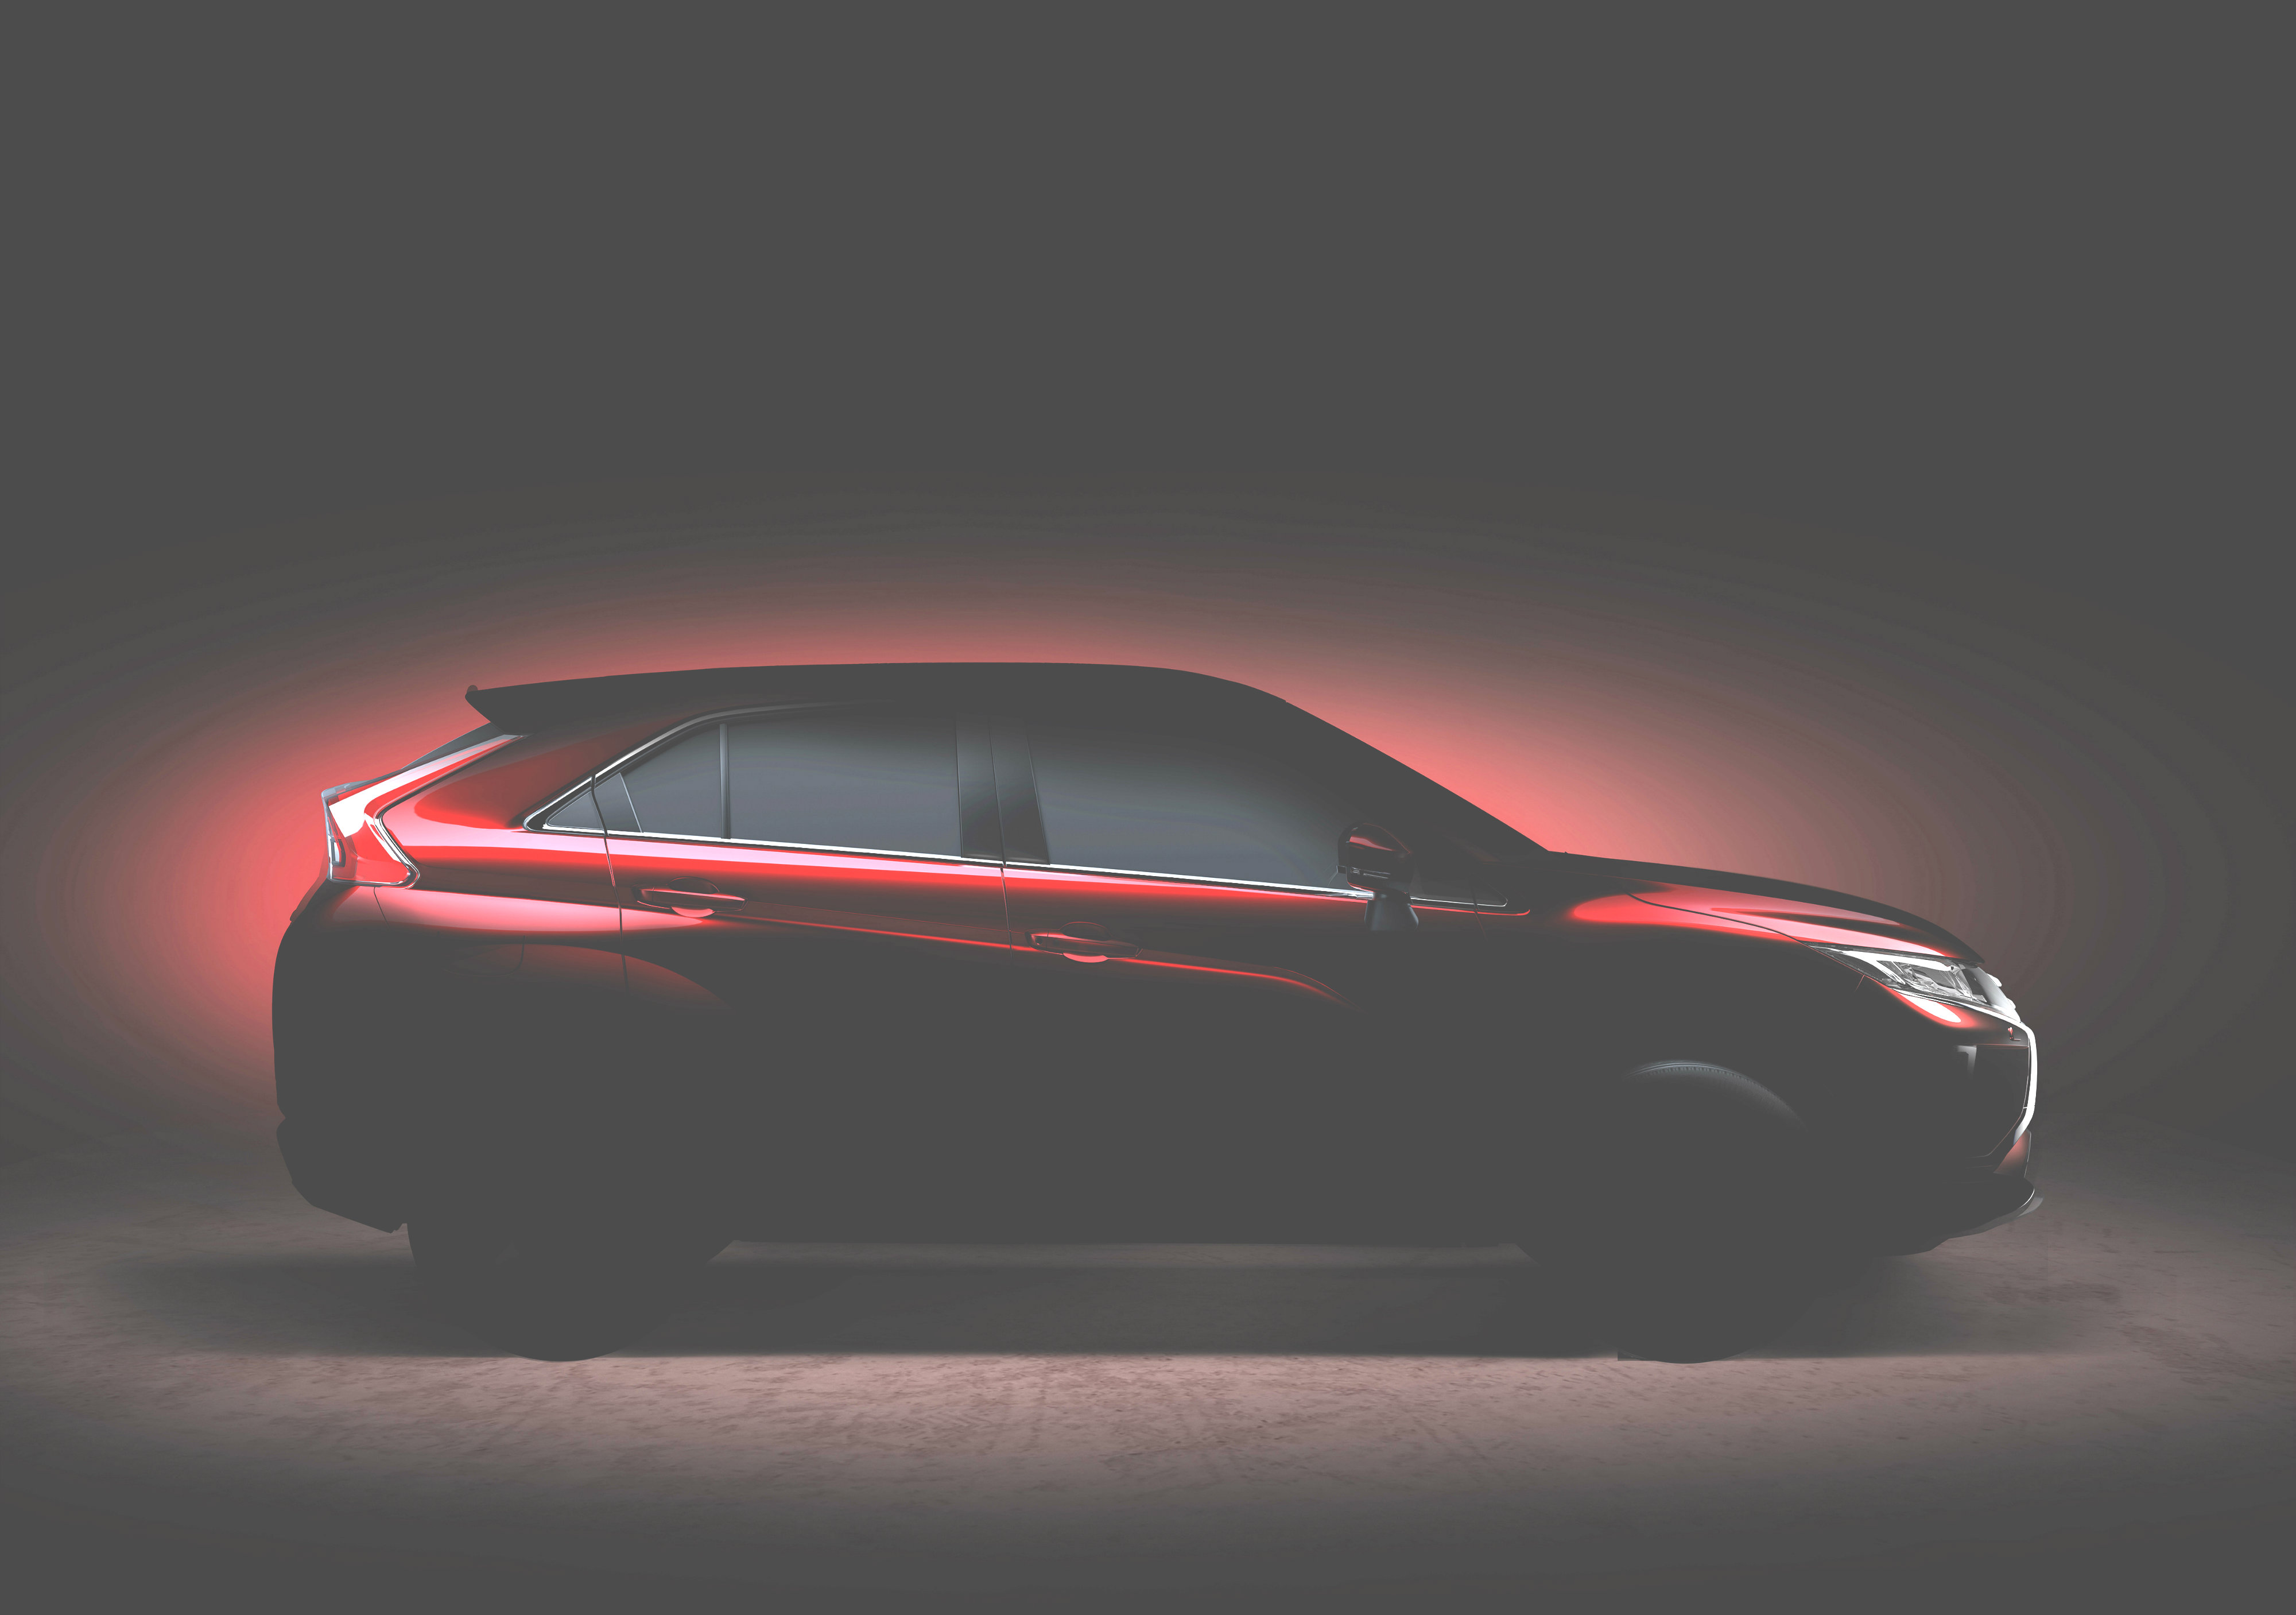 https://s1.cdn.autoevolution.com/images/news/mitsubishi-teases-new-suv-will-slot-between-asx-and-outlander-114871_1.jpg